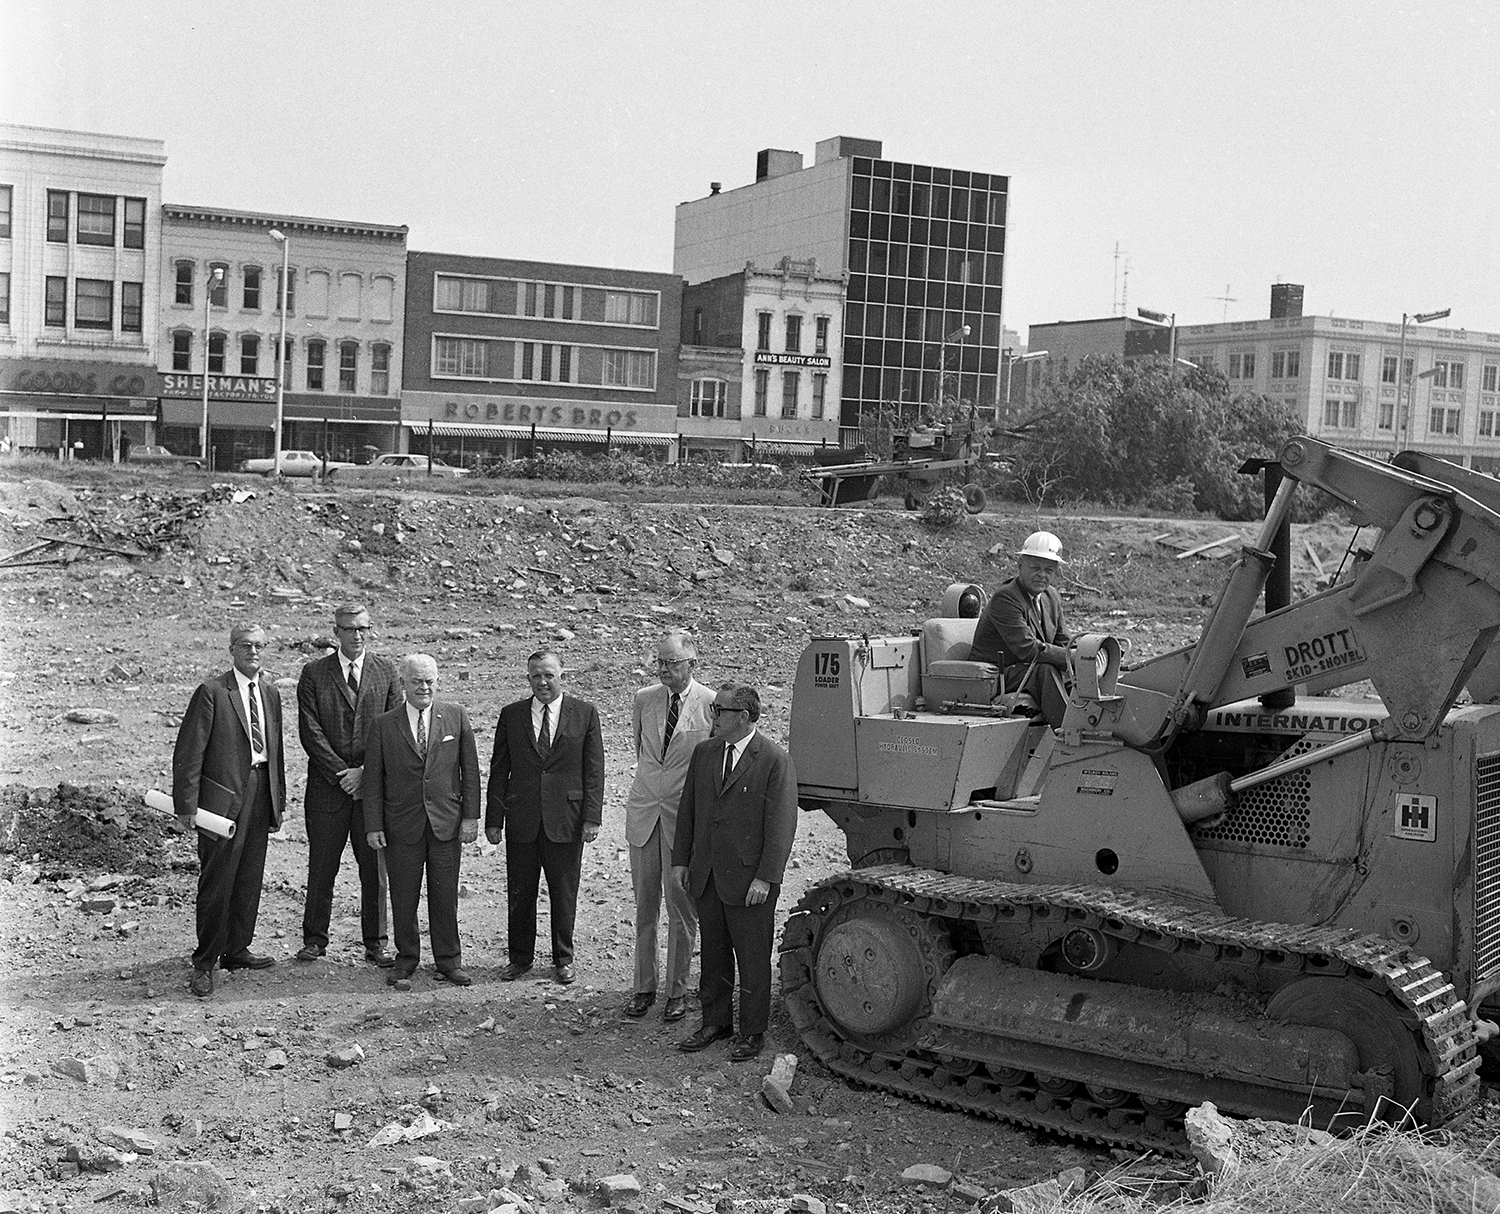 Russell Dunlap, left, project manager of the state architects office; A.P. Wisnowsky of Ferry and Henderson Architects; William E. Smith, assistant director of conservation; Richard Long of the Illinois Building Authority; and Clyde Walton, state historian. On the bulldozer is William Lodge, director of conservation, photographed July 1966 at the excavation site for the Old State Capitol. File/The State Journal-Register